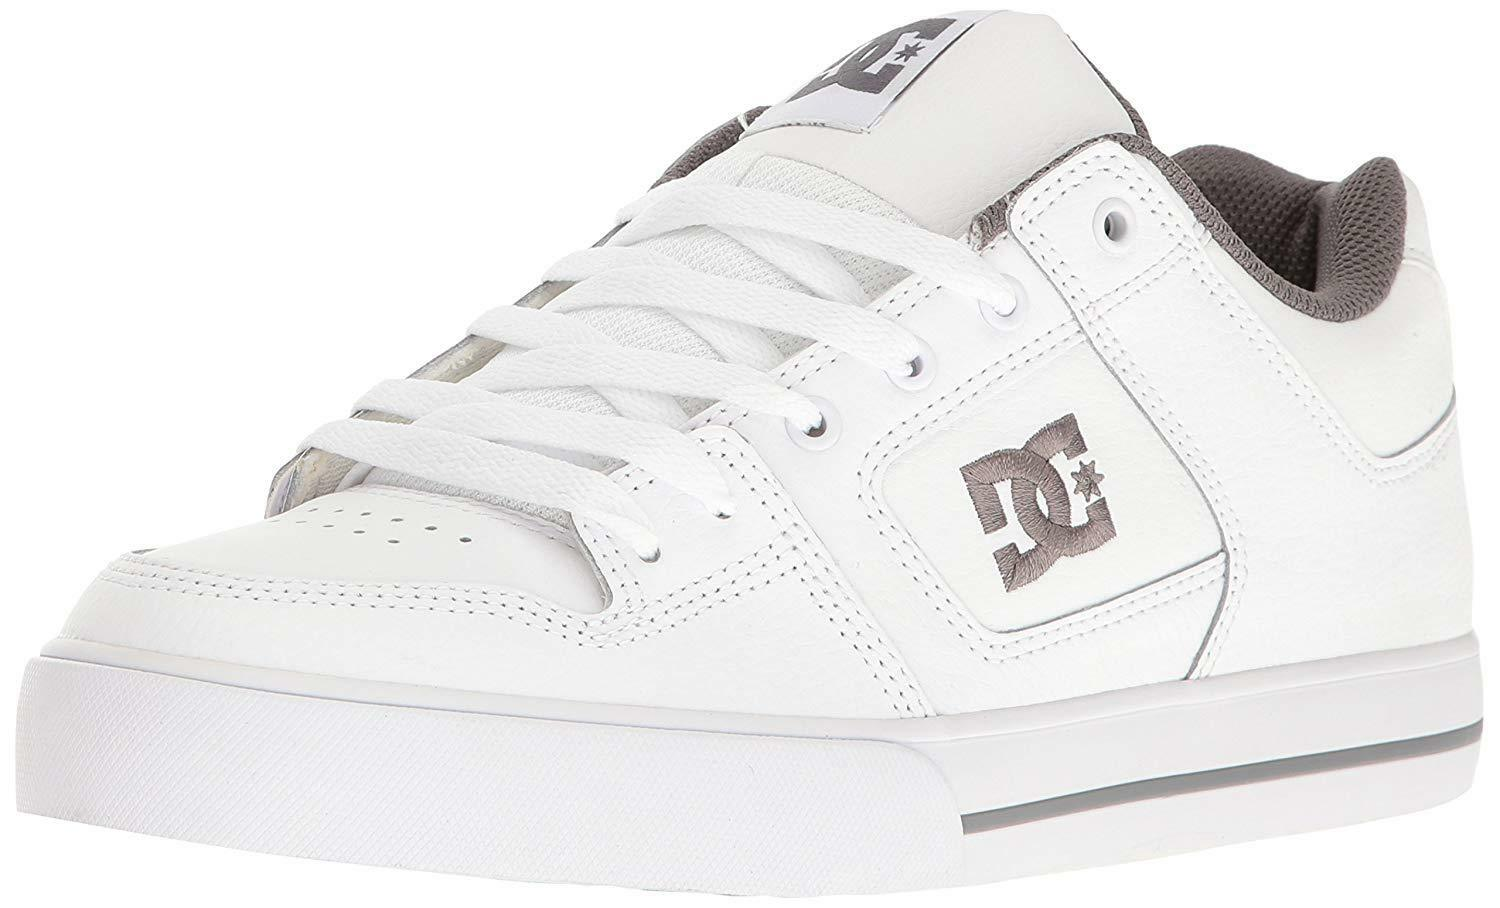 DC  Uomo Pure Action / Sport Sneaker Schuhes Weiß / Action Battleship / Weiß 10.5 DM US dcbe7b